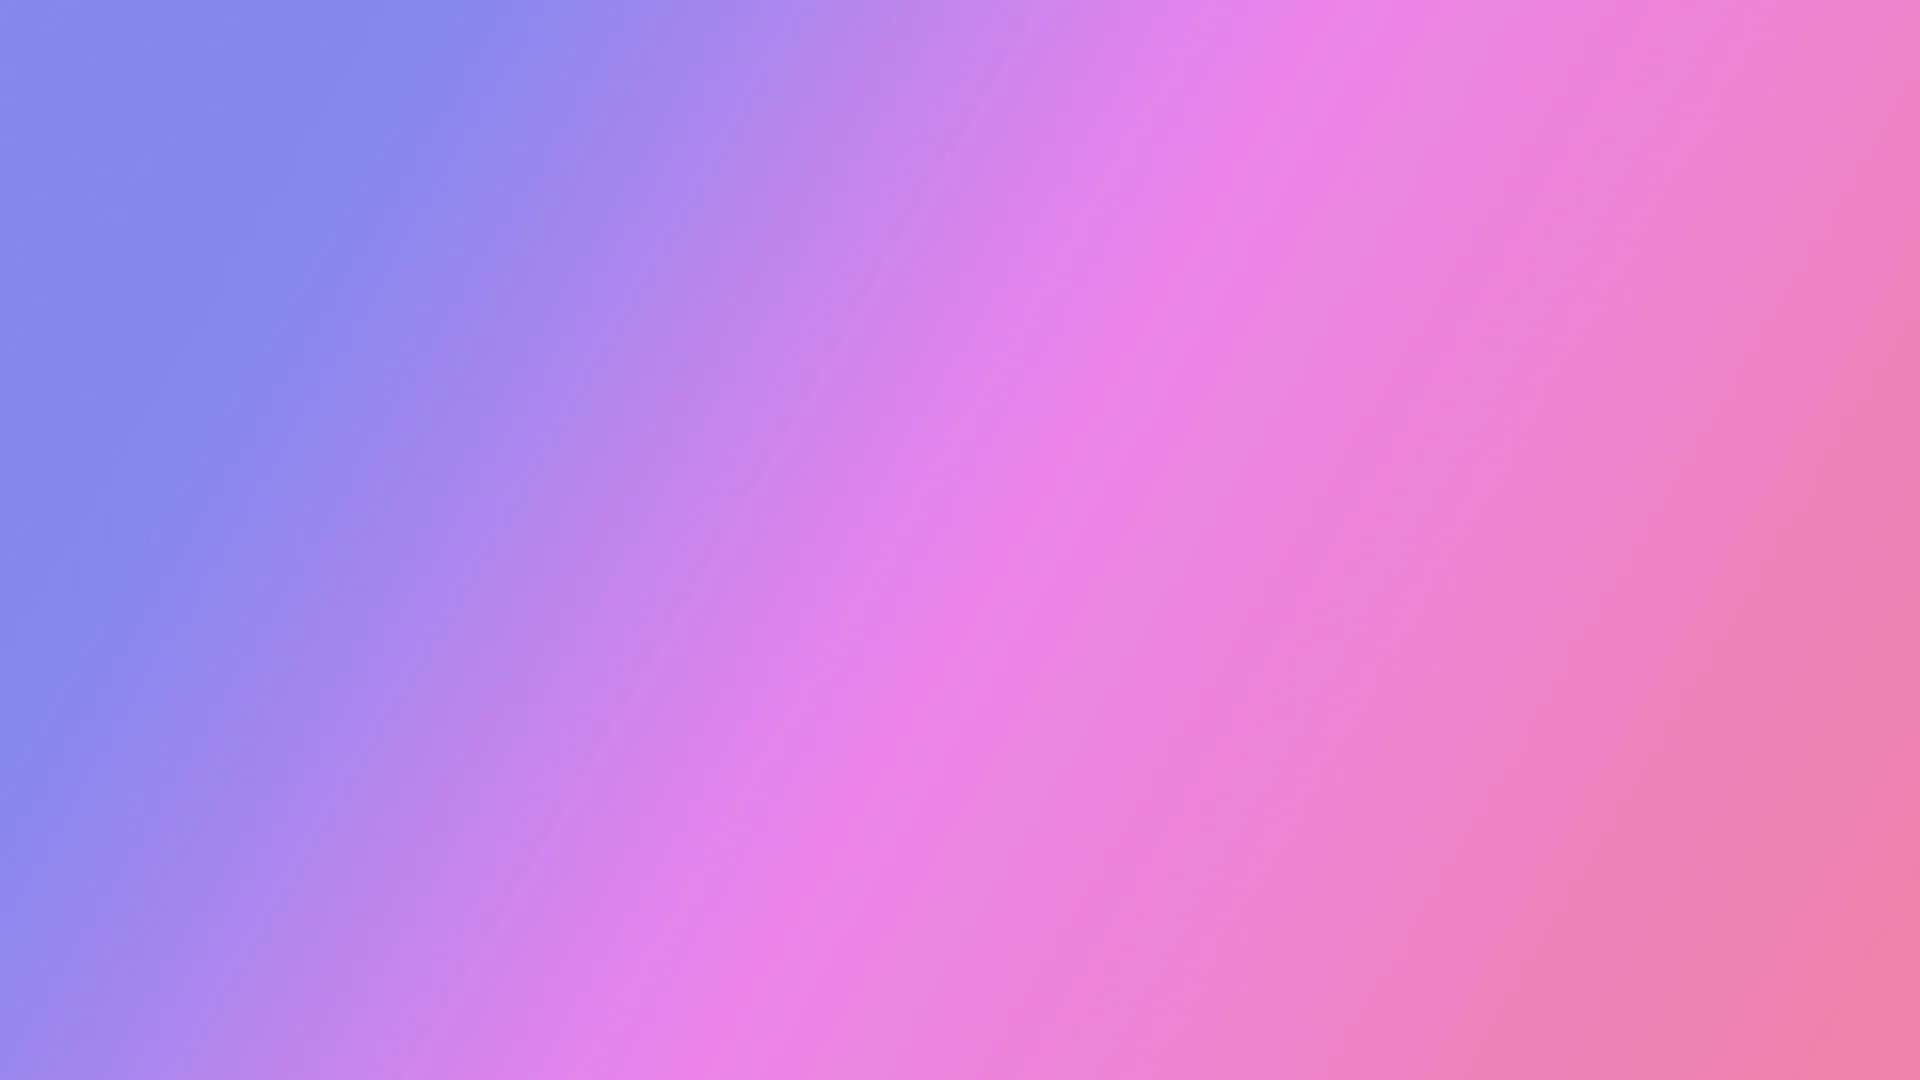 Pastel-Presentation-Gradient-Background